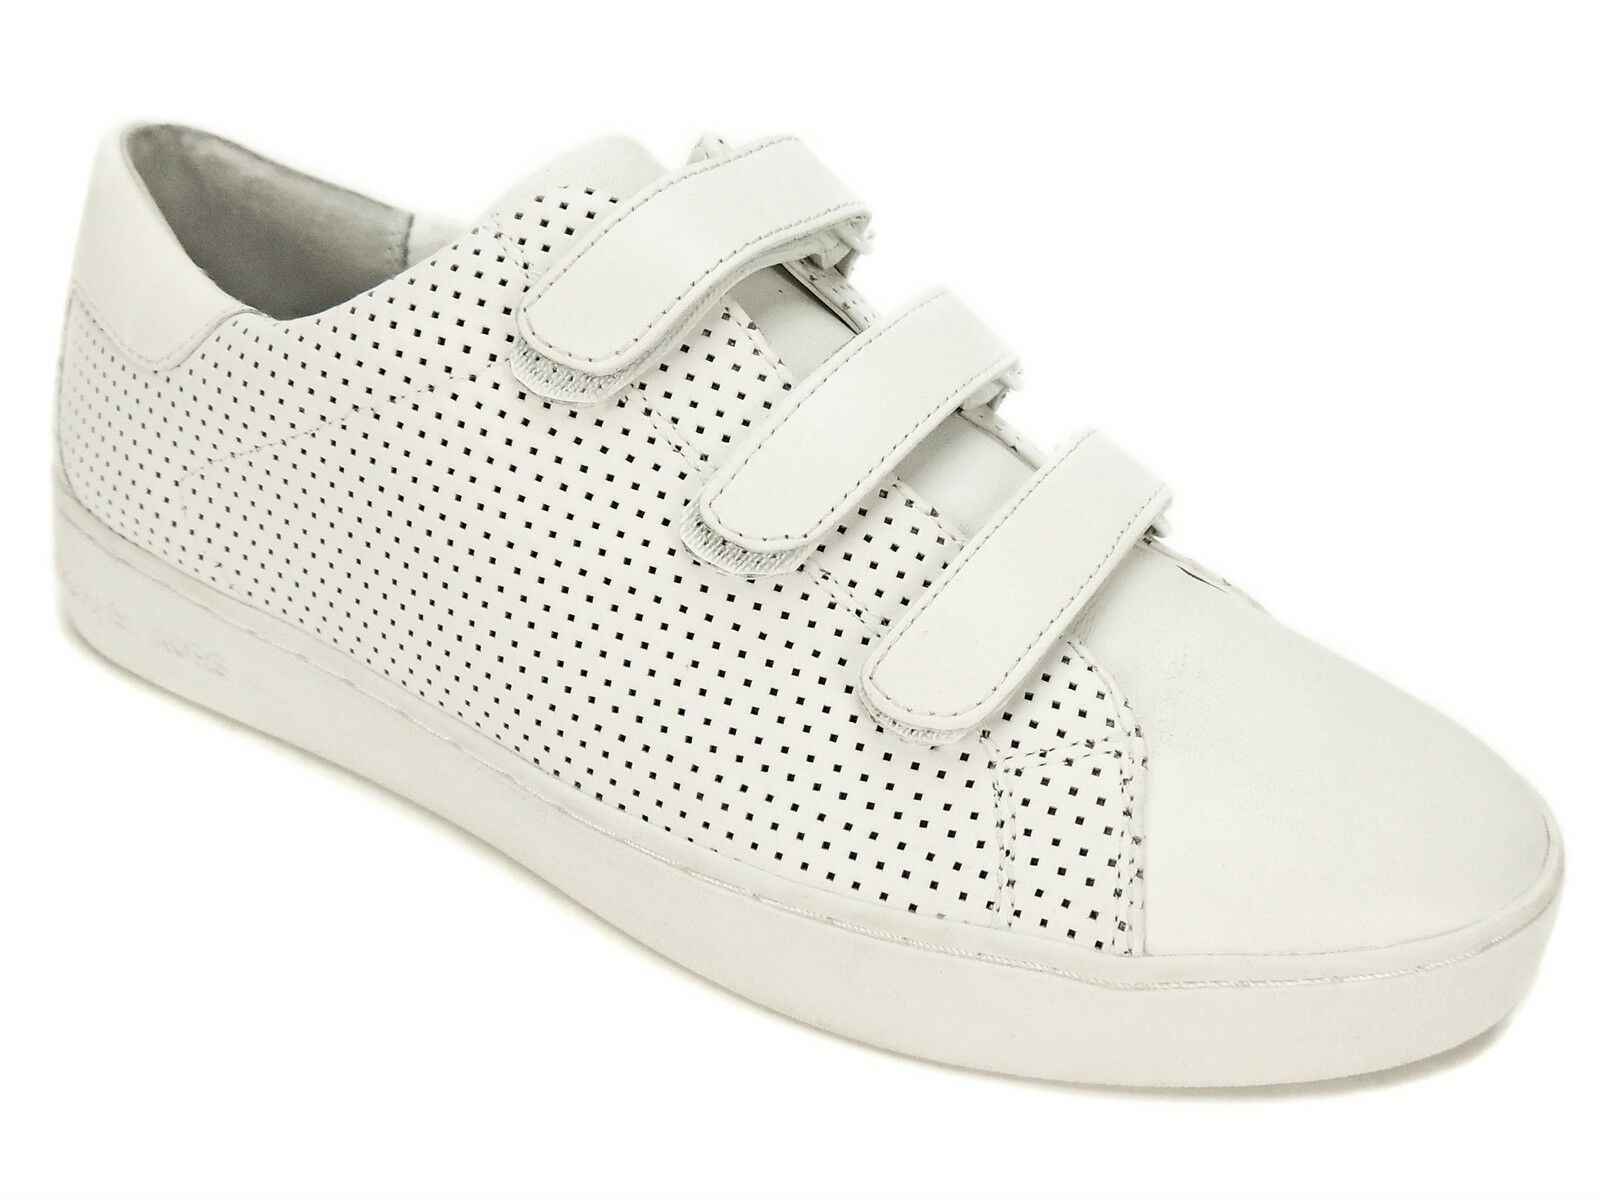 Michael by Michael Kors Women's Craig Sneakers White Leather Size 9.5 M